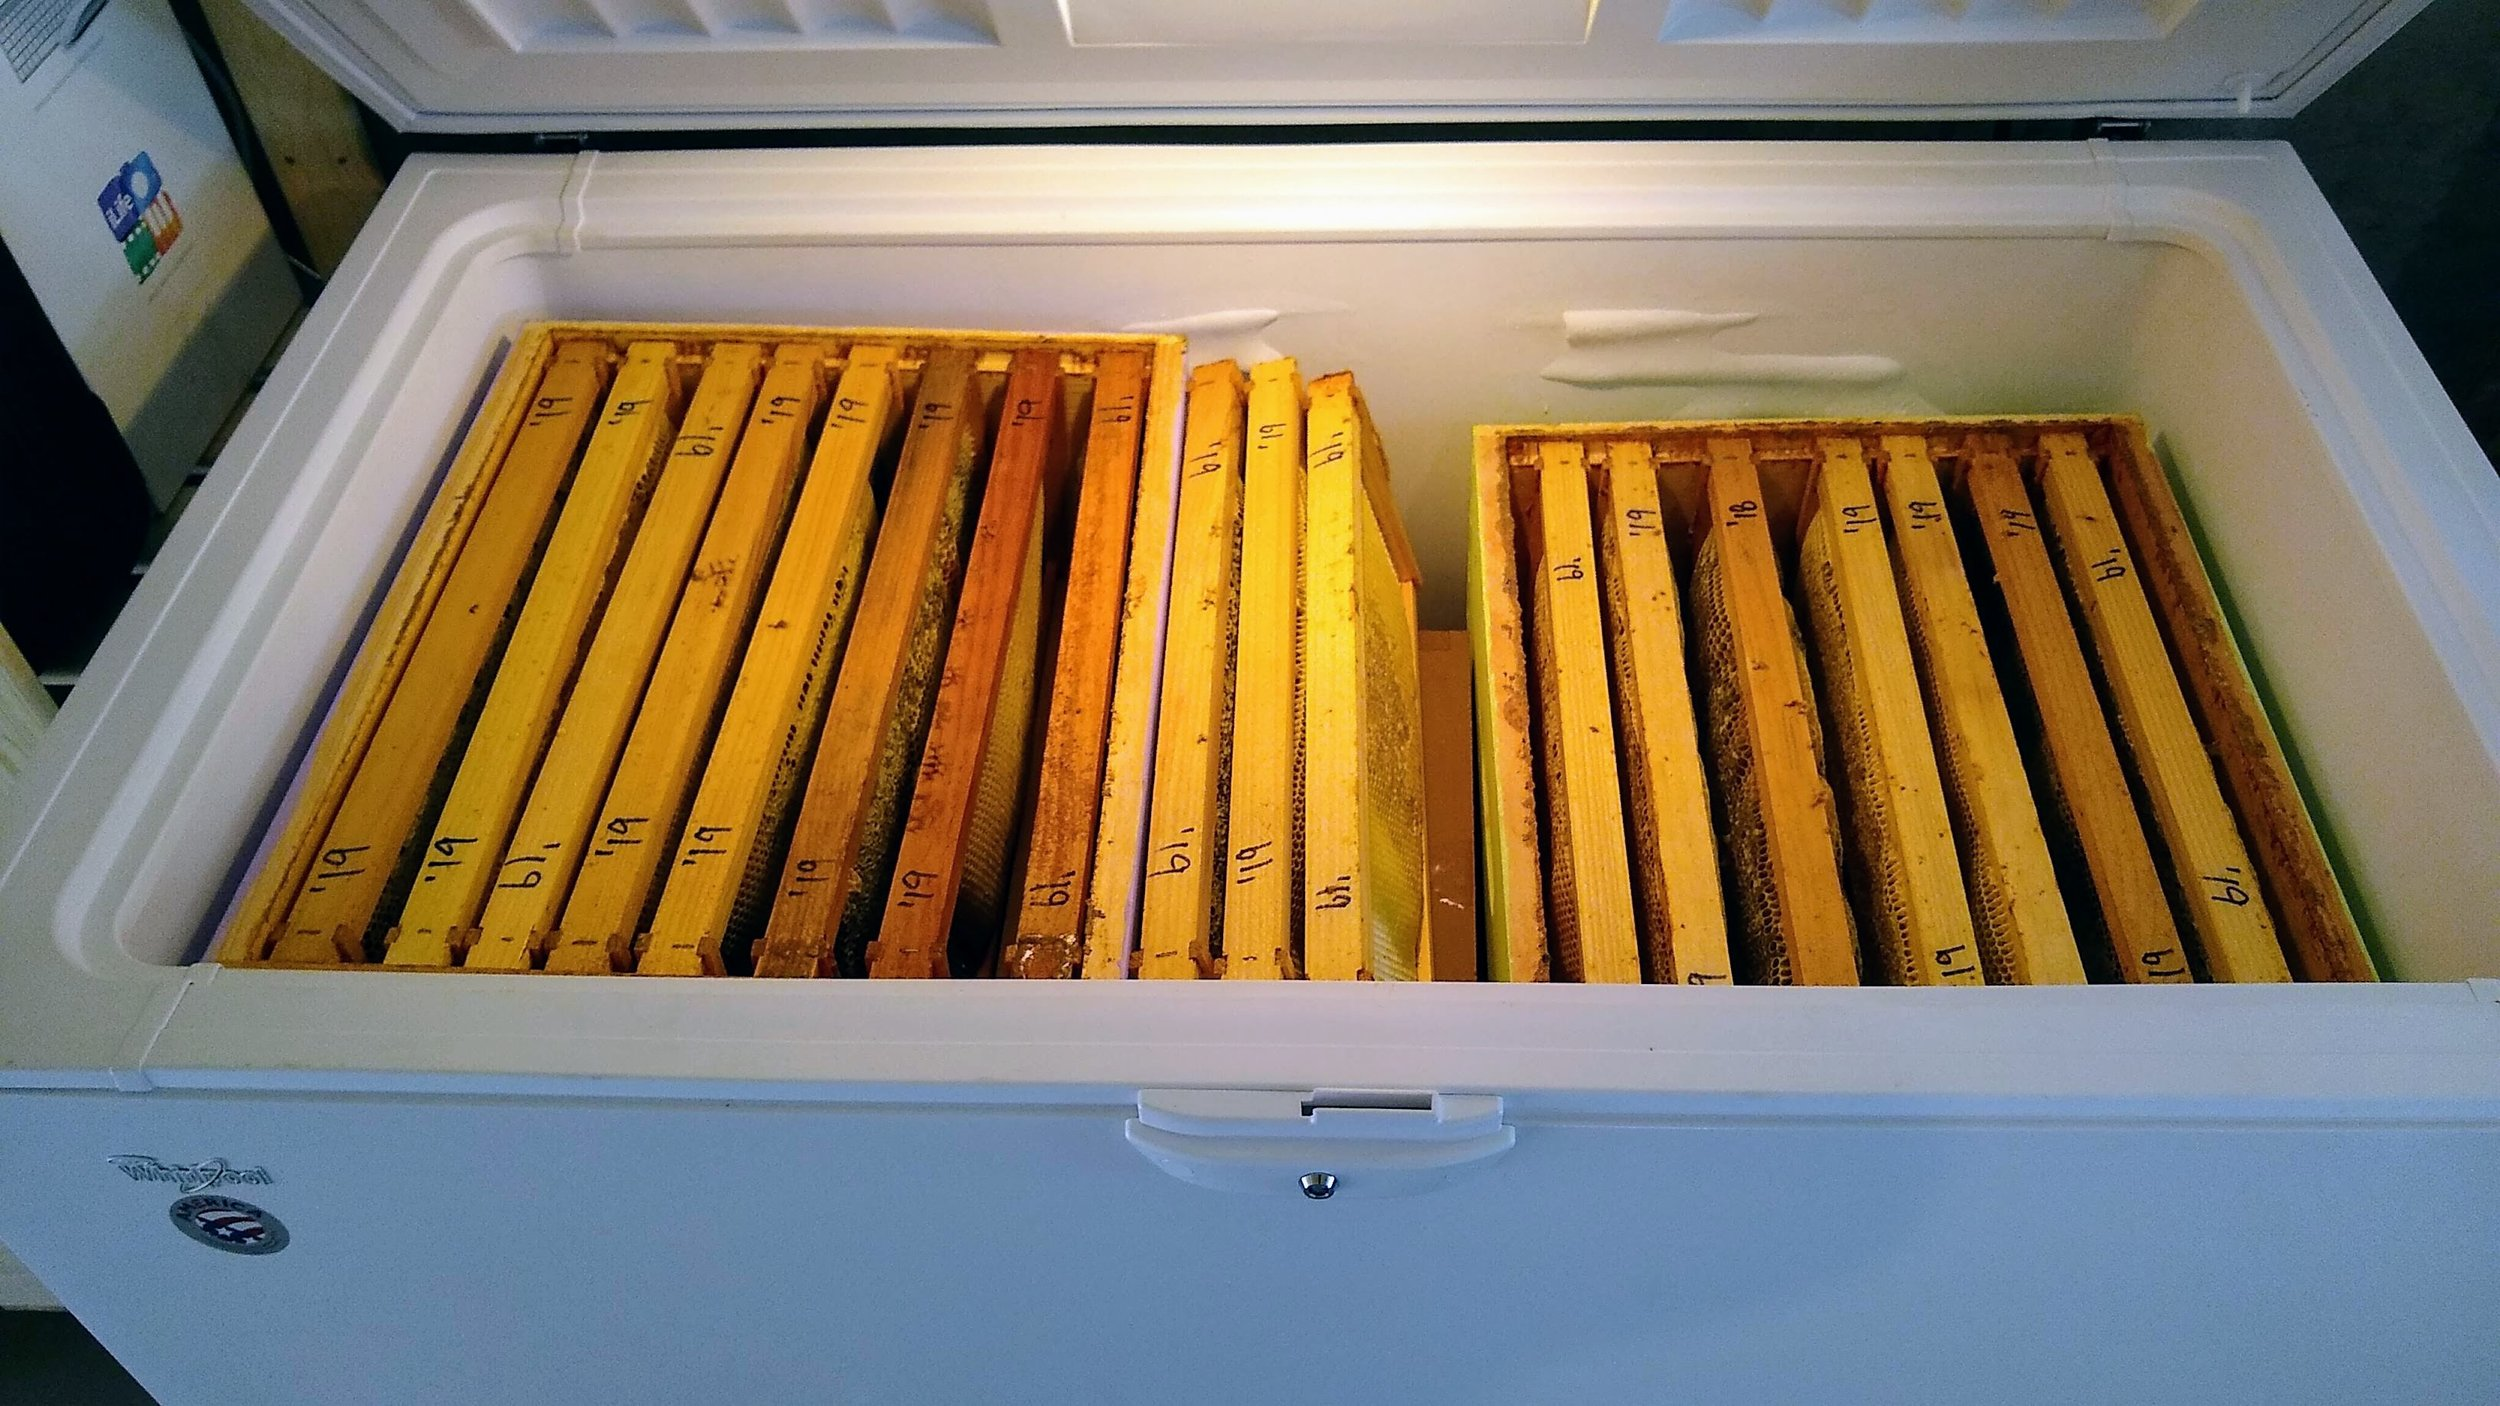 A batch of honey supers—each weighting about 50 pounds—in the freezer awaiting extraction